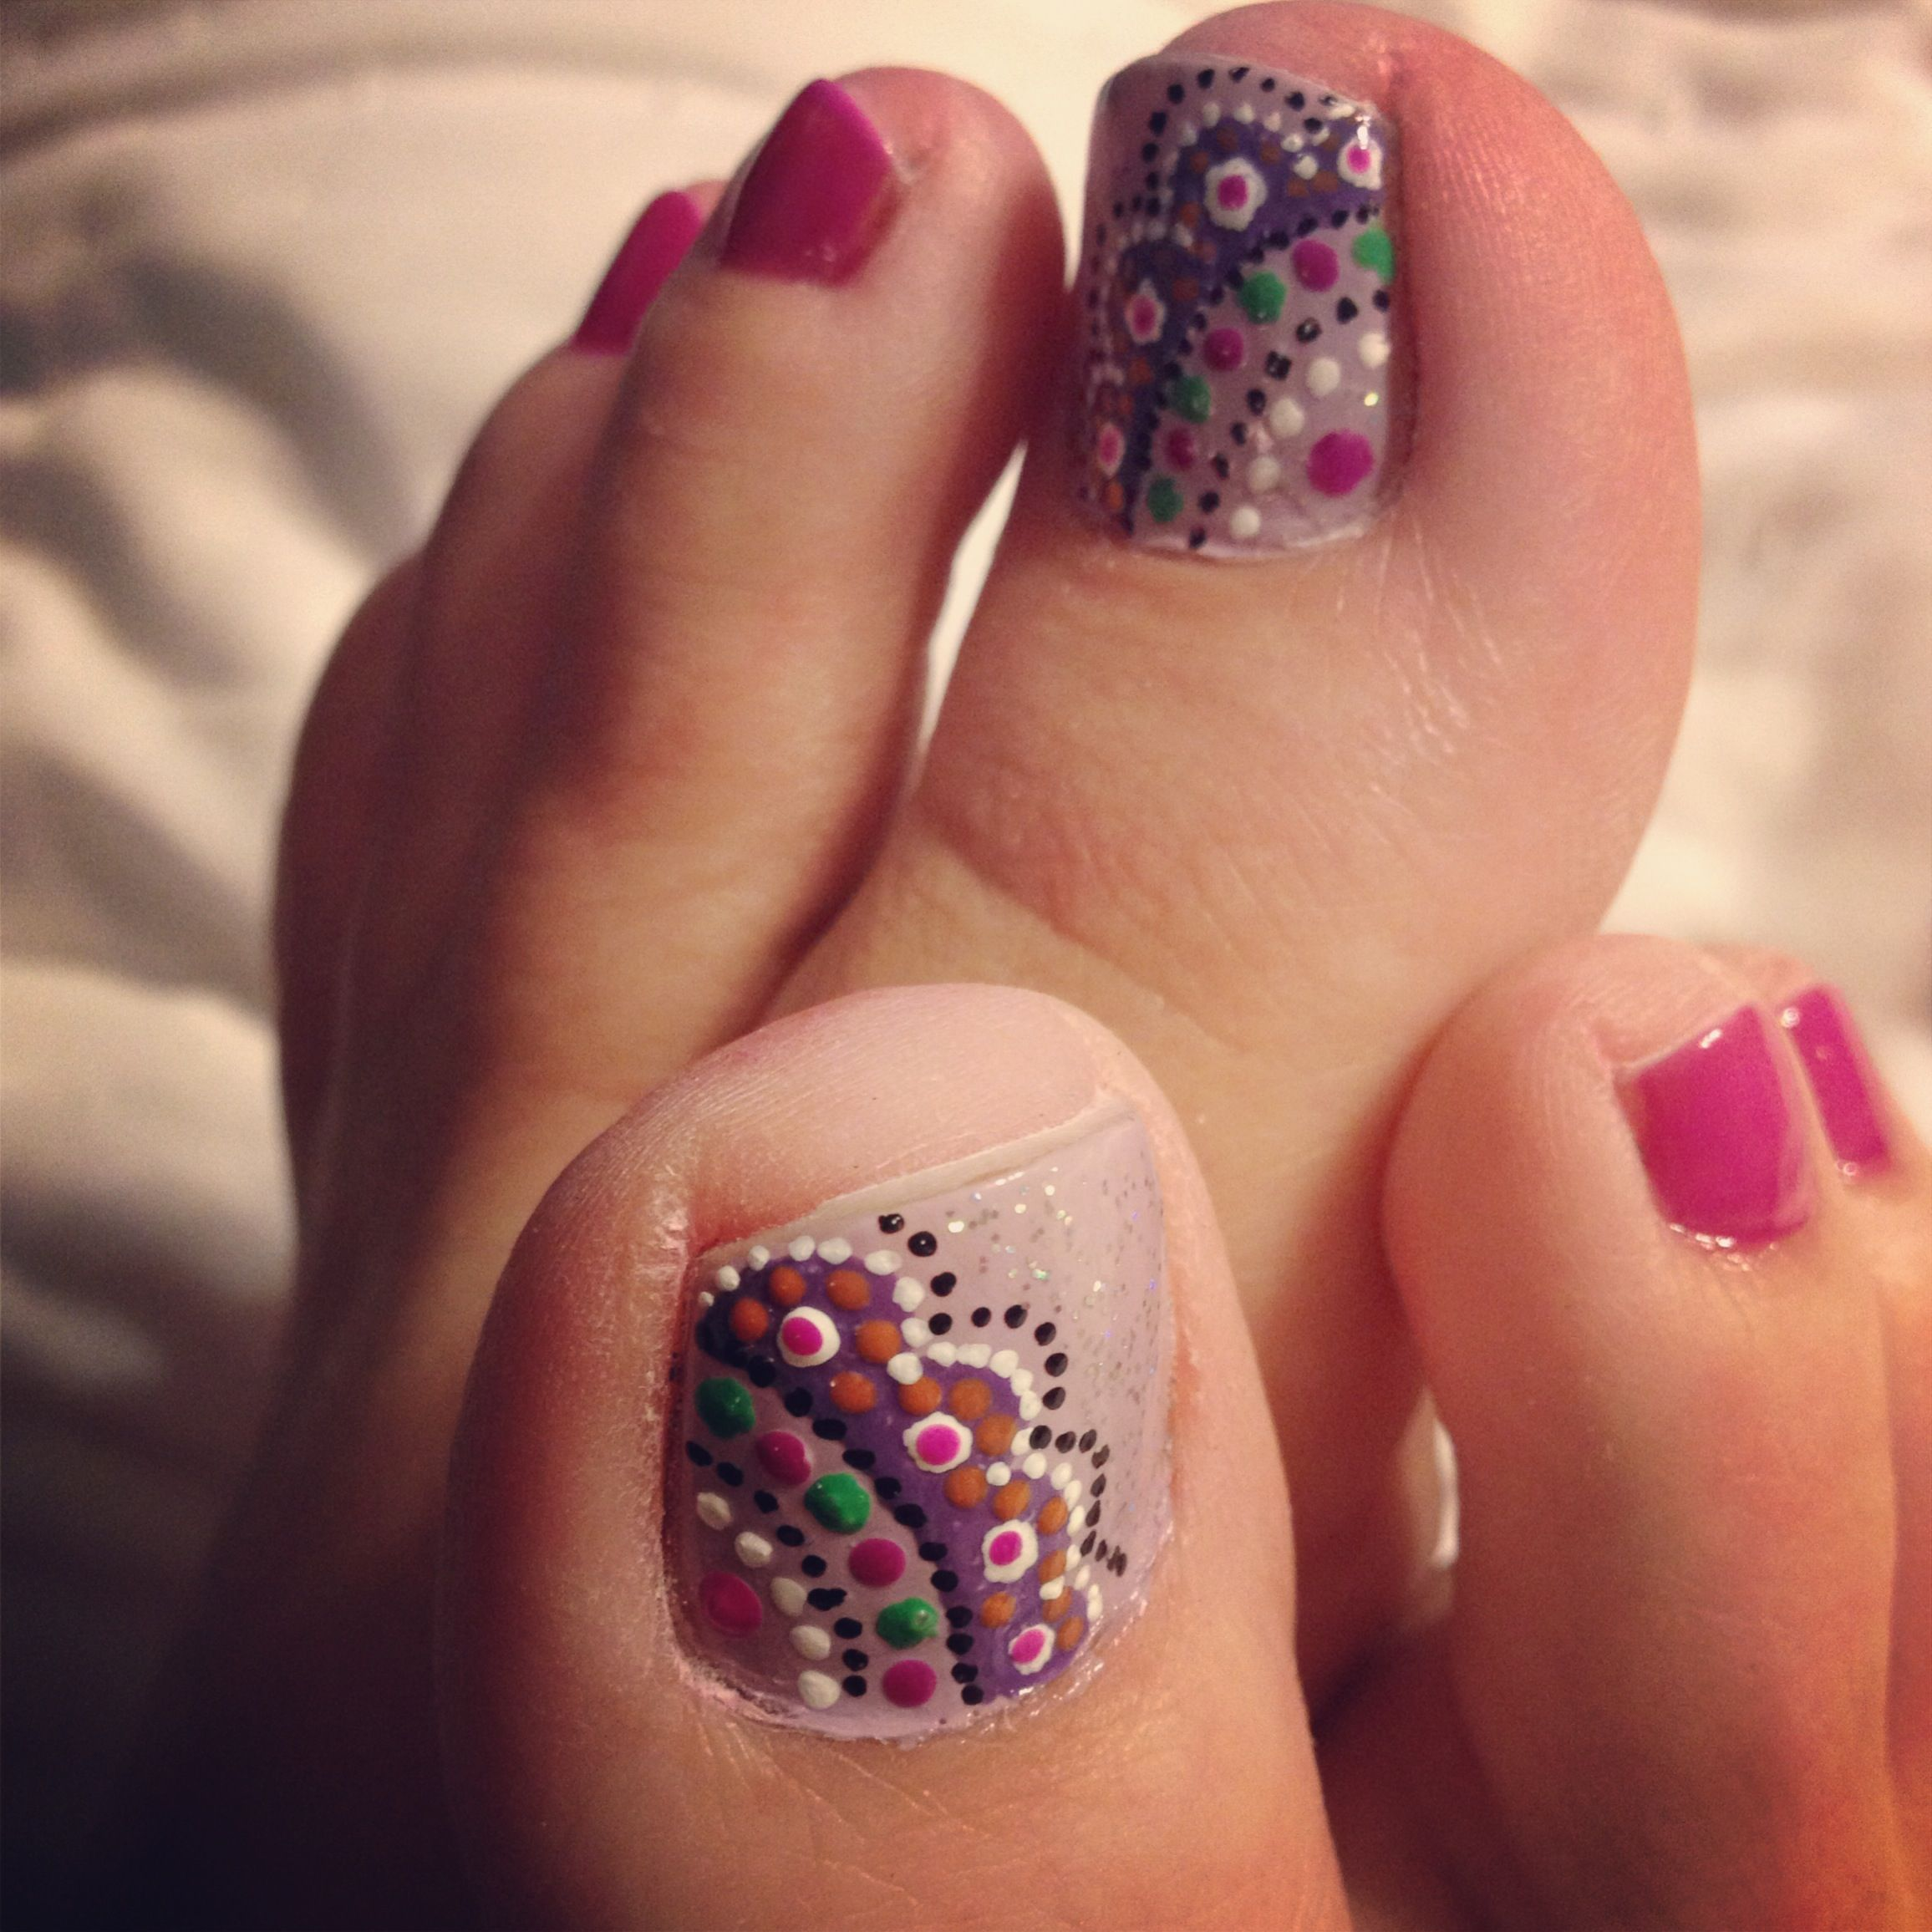 Doily toenail art | doily | Pinterest | Pedicures, Pedi and Mani pedi